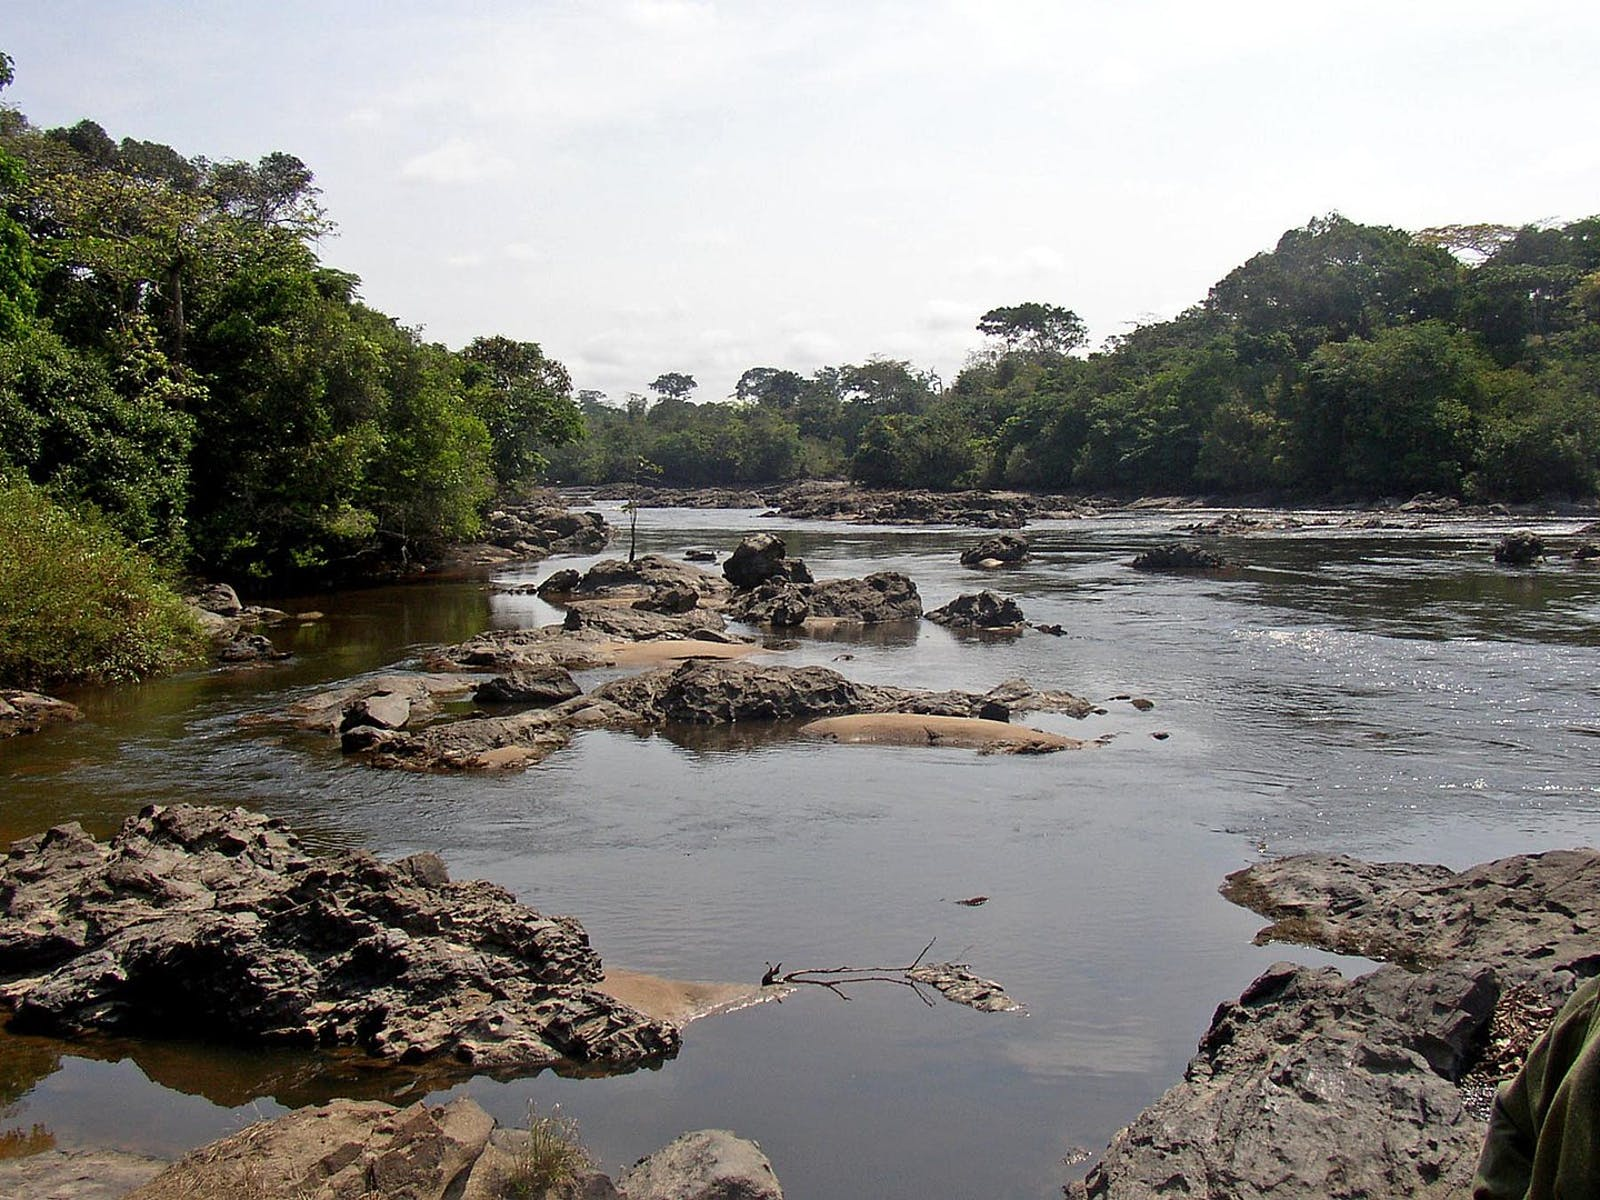 Northeast Congolian Lowland Forests